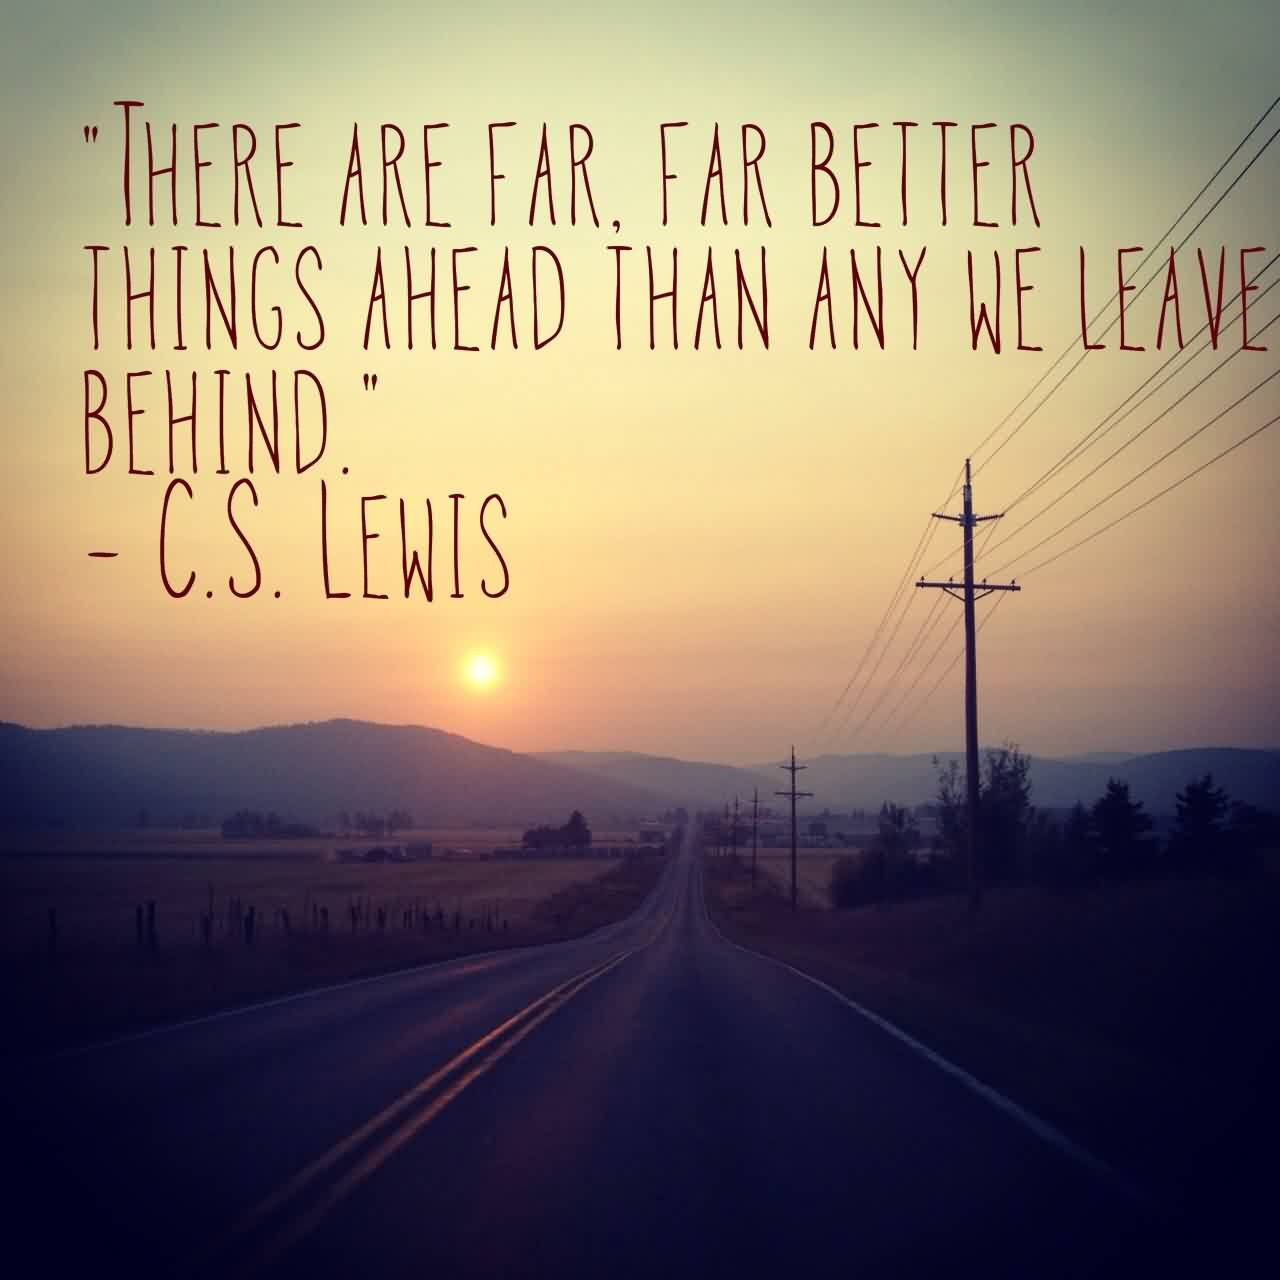 There Are Farfar Better Things Ahead Than Any We Leave Behind